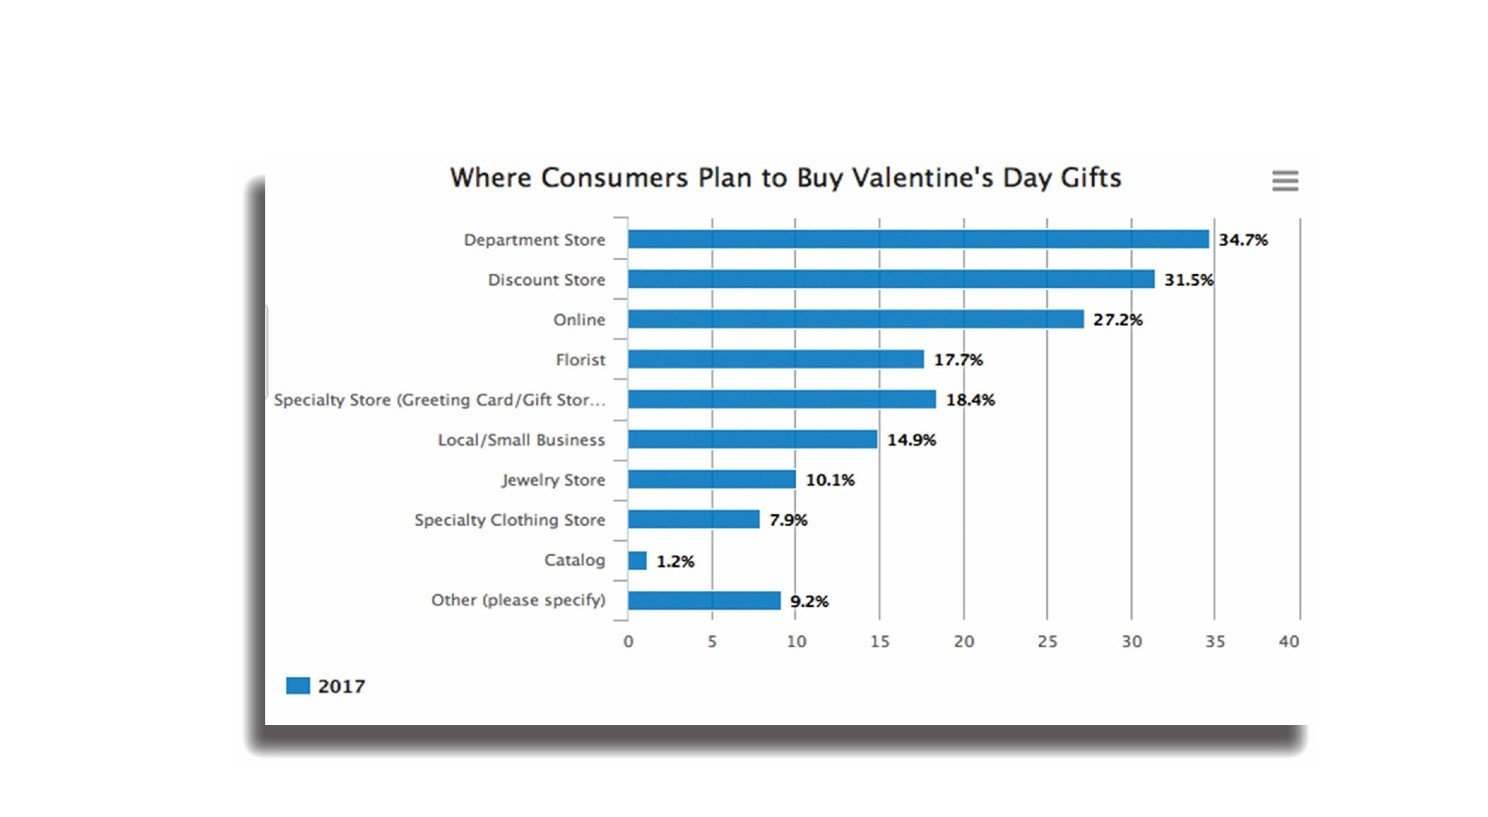 Valentine's Day Consumer Spending trends and statistics